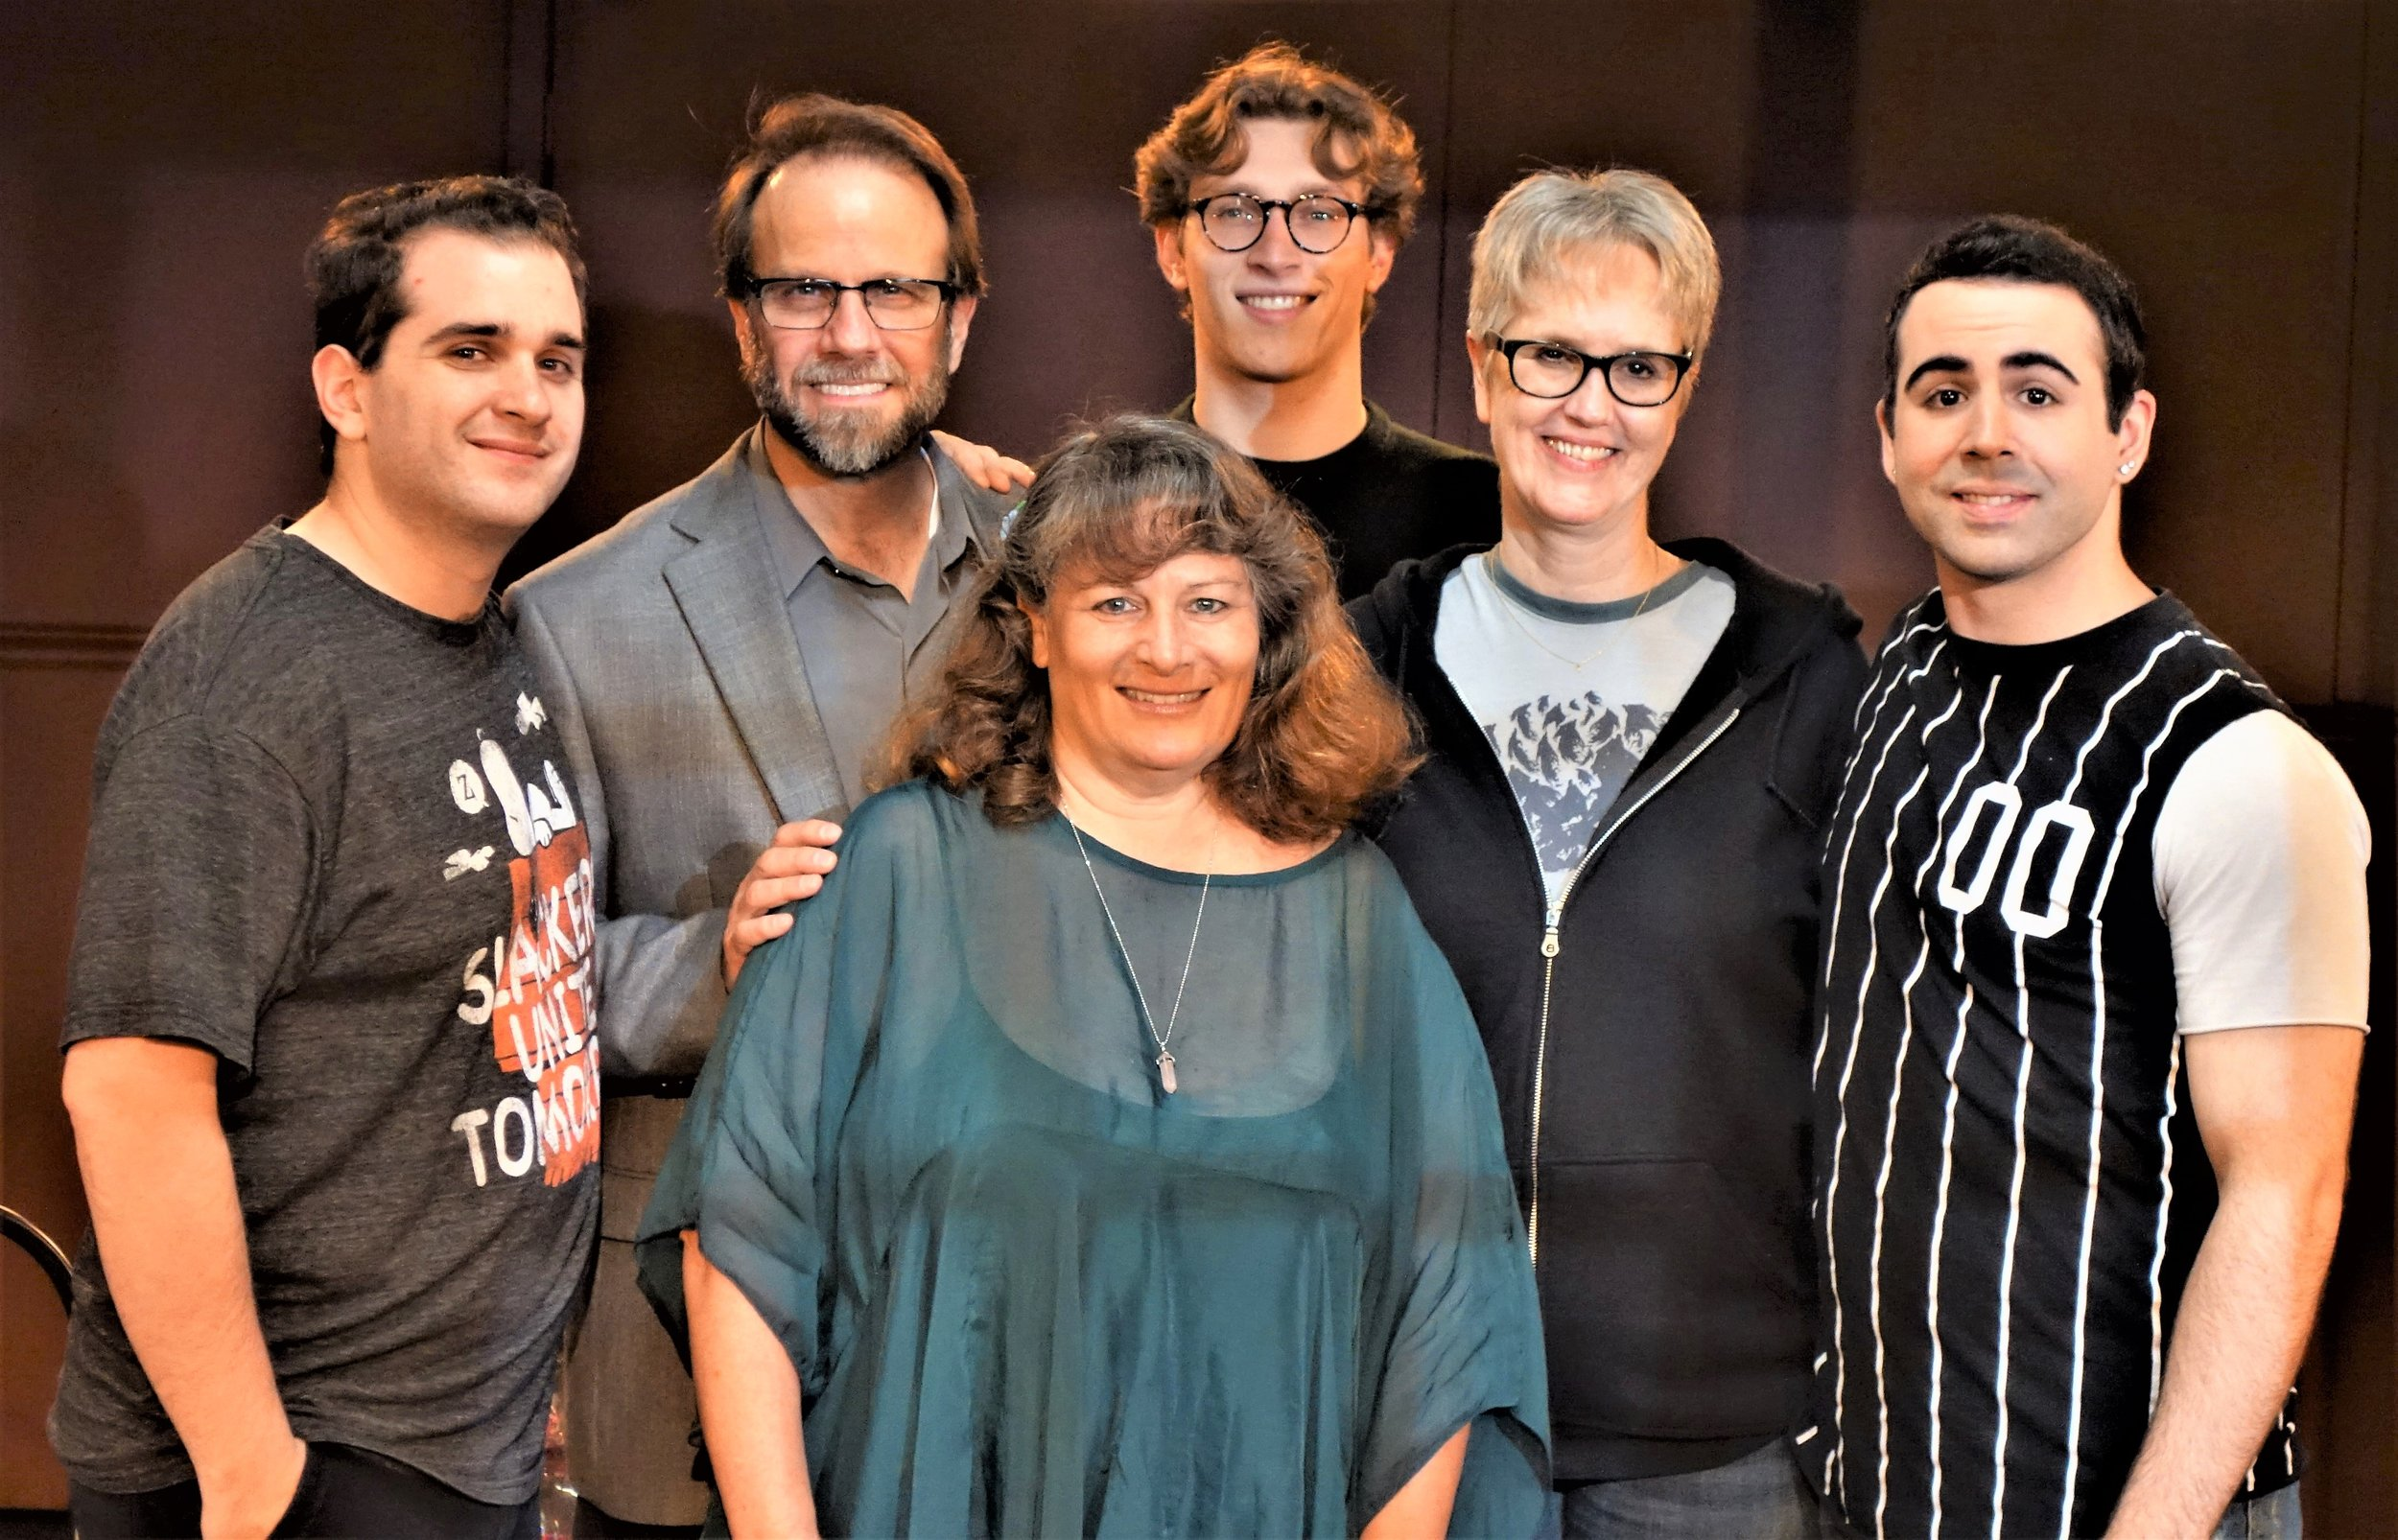 Arianna Rose (playwright, center) with the cast of FAMILY BY NUMBERS:  Father:  STEVE AYLE   Mother:  LINDA MAY   Oldest Son:  DYLAN ROBERT POULOS   Middle Son:  STEVEN UIHLEIN   Youngest Son:  RYAN SCHAEFER   Directed by  JEFFREY SANZEL